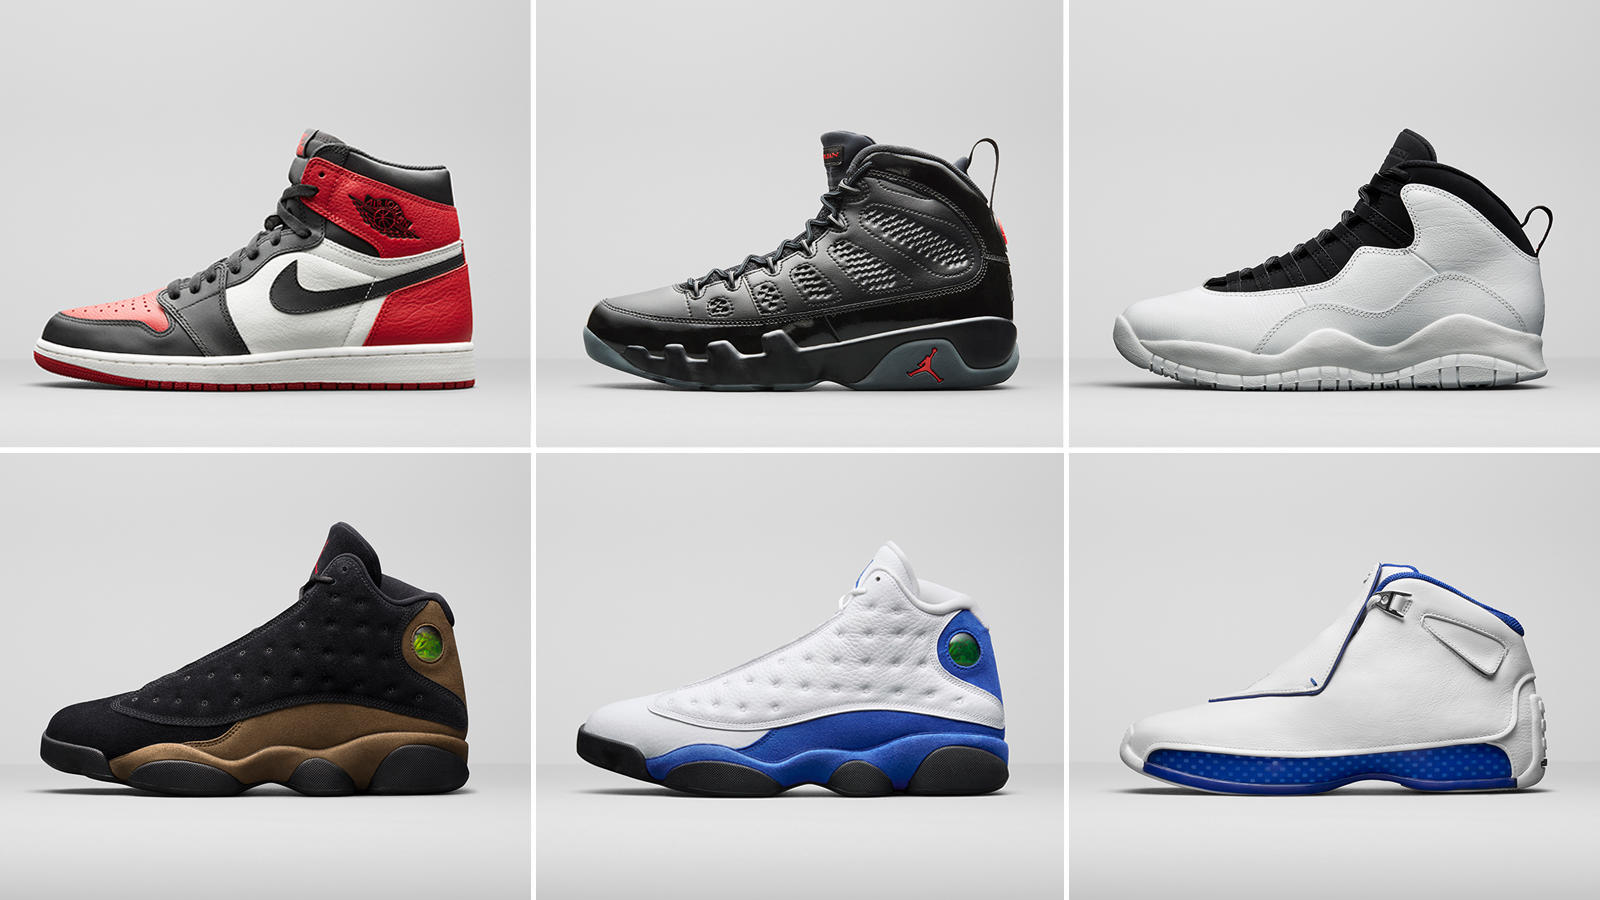 Jordan Brand Unveils 2018 Retro Styles for the Spring Season - Nike News 77abc542a6